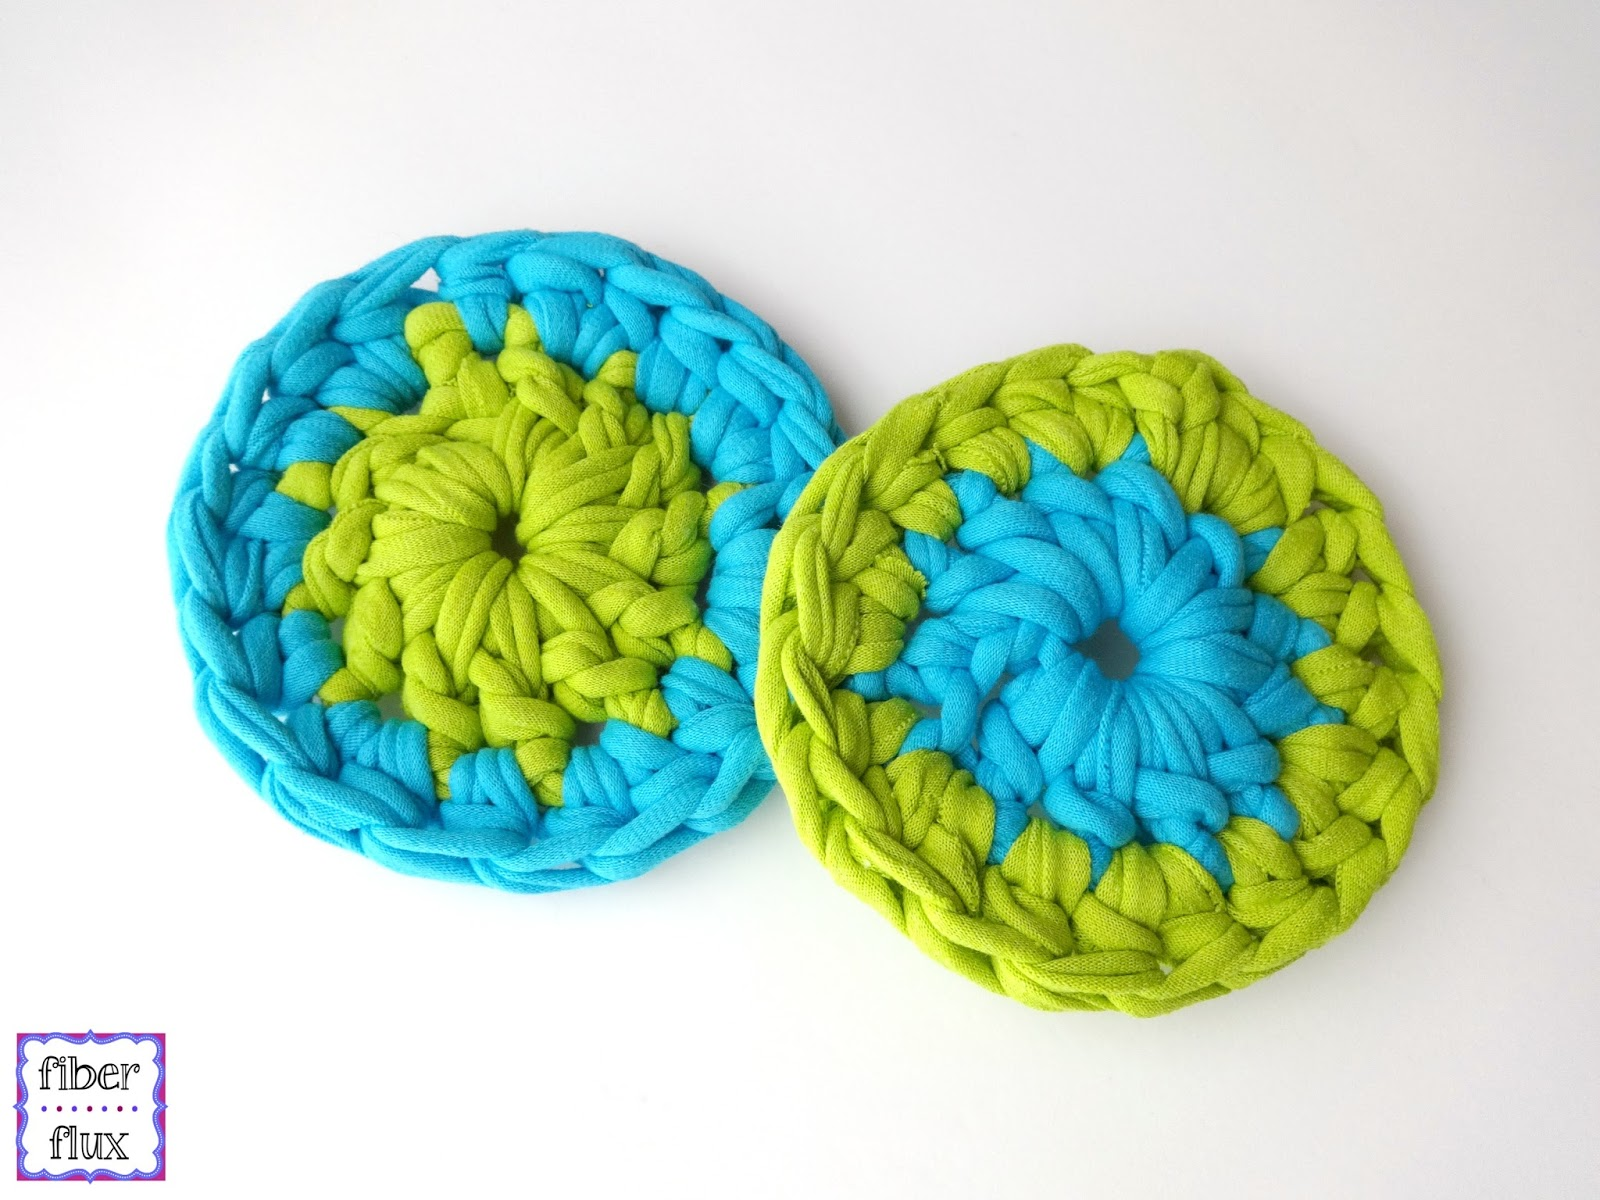 Free Crochet Patterns Tshirt Yarn : Fiber Flux: Free Crochet Pattern...T-Shirt Yarn Coasters!